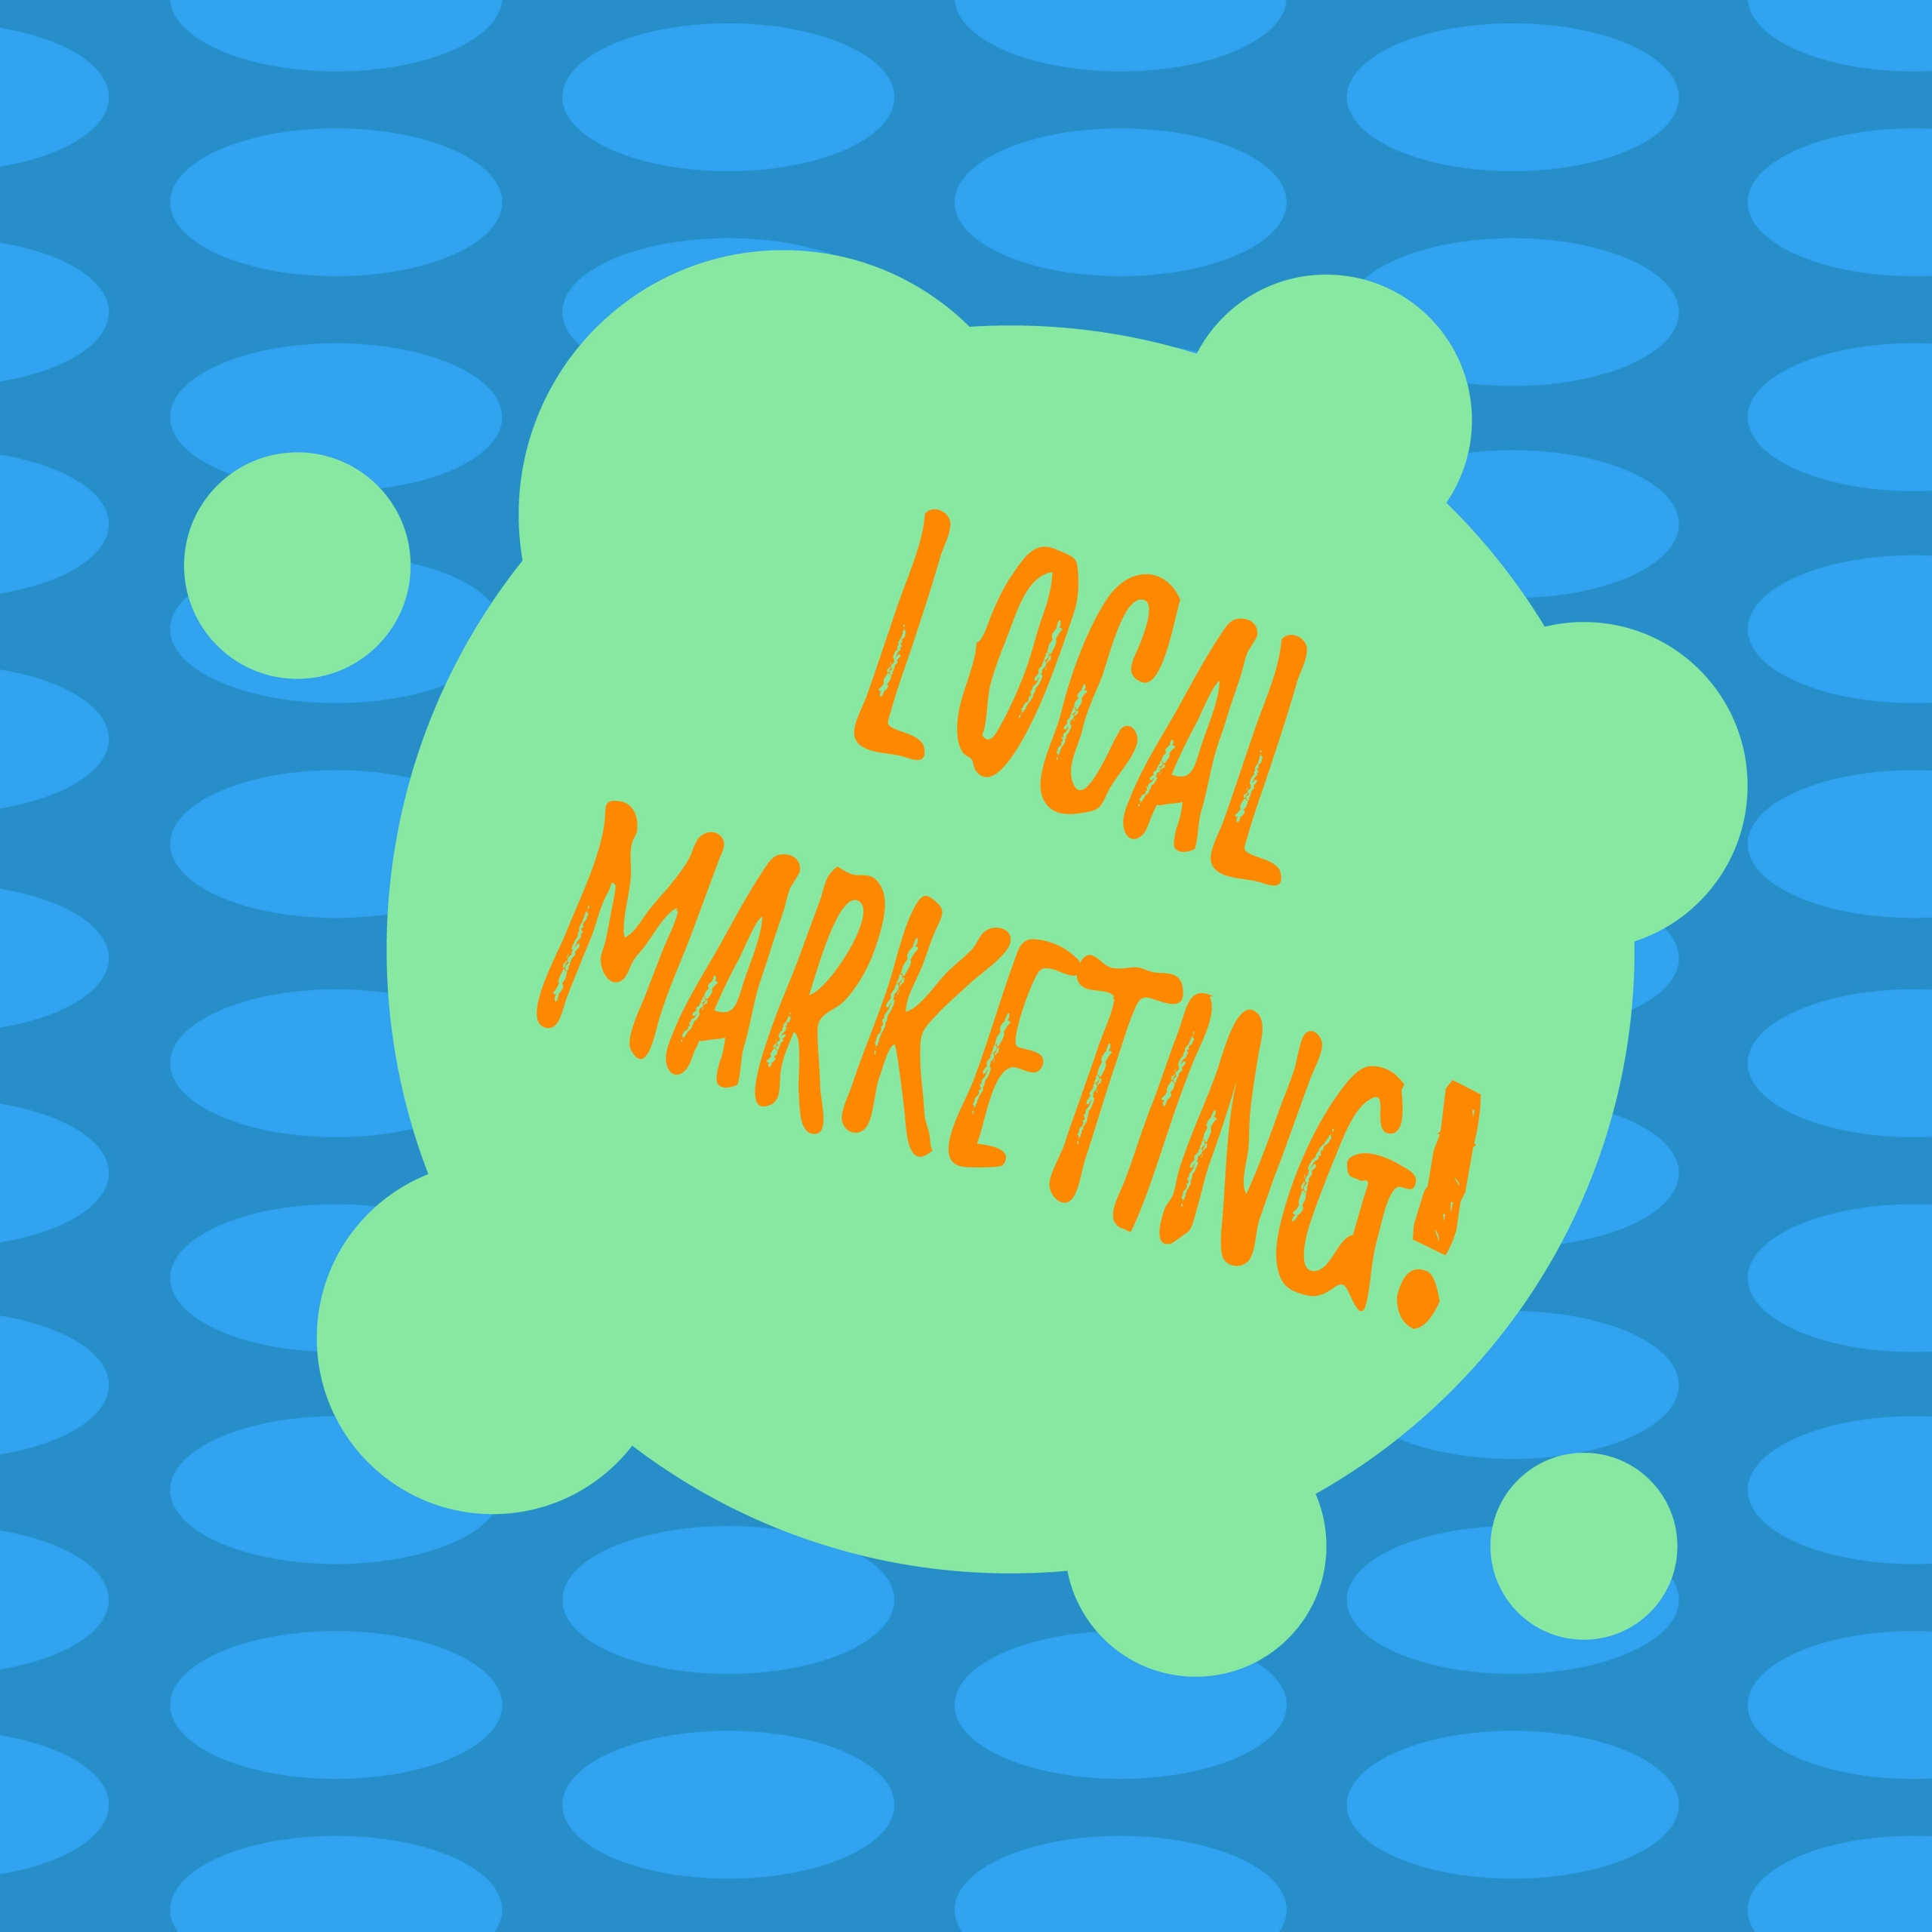 local marketing ideas